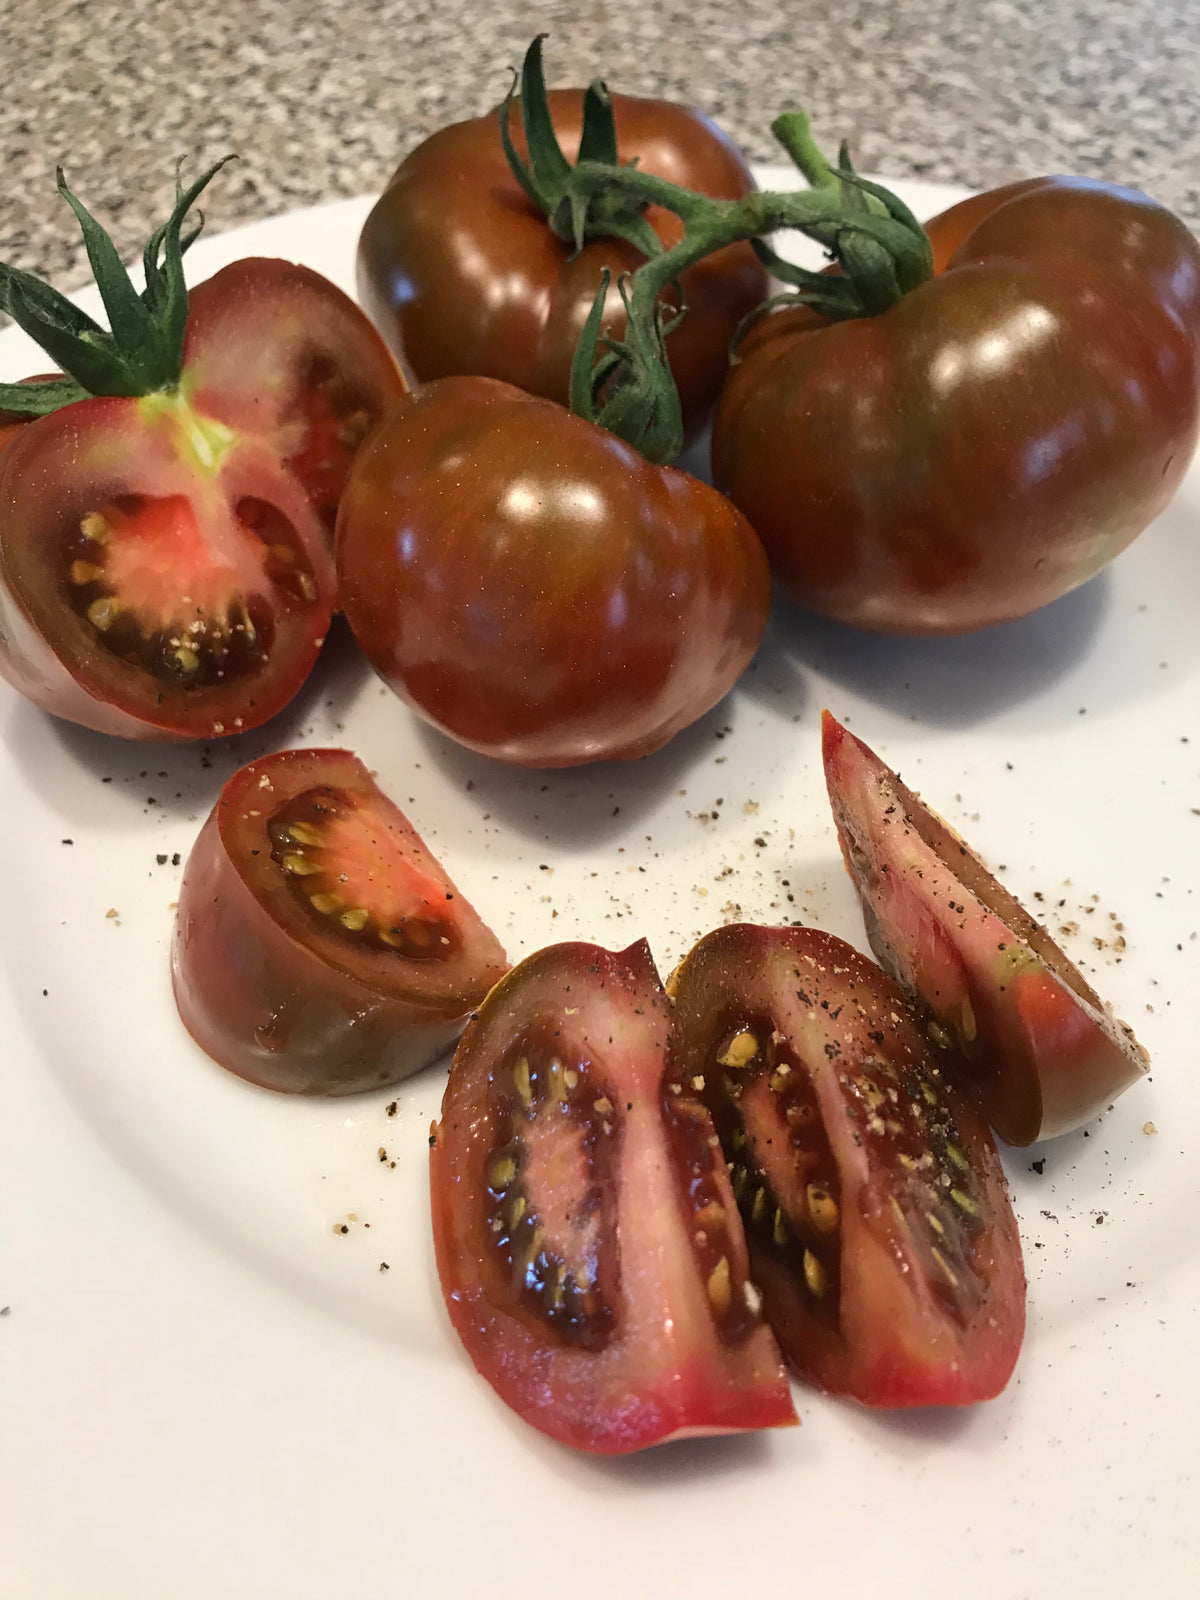 Black Velvet tomatoes, heirloom variety, 1 quart